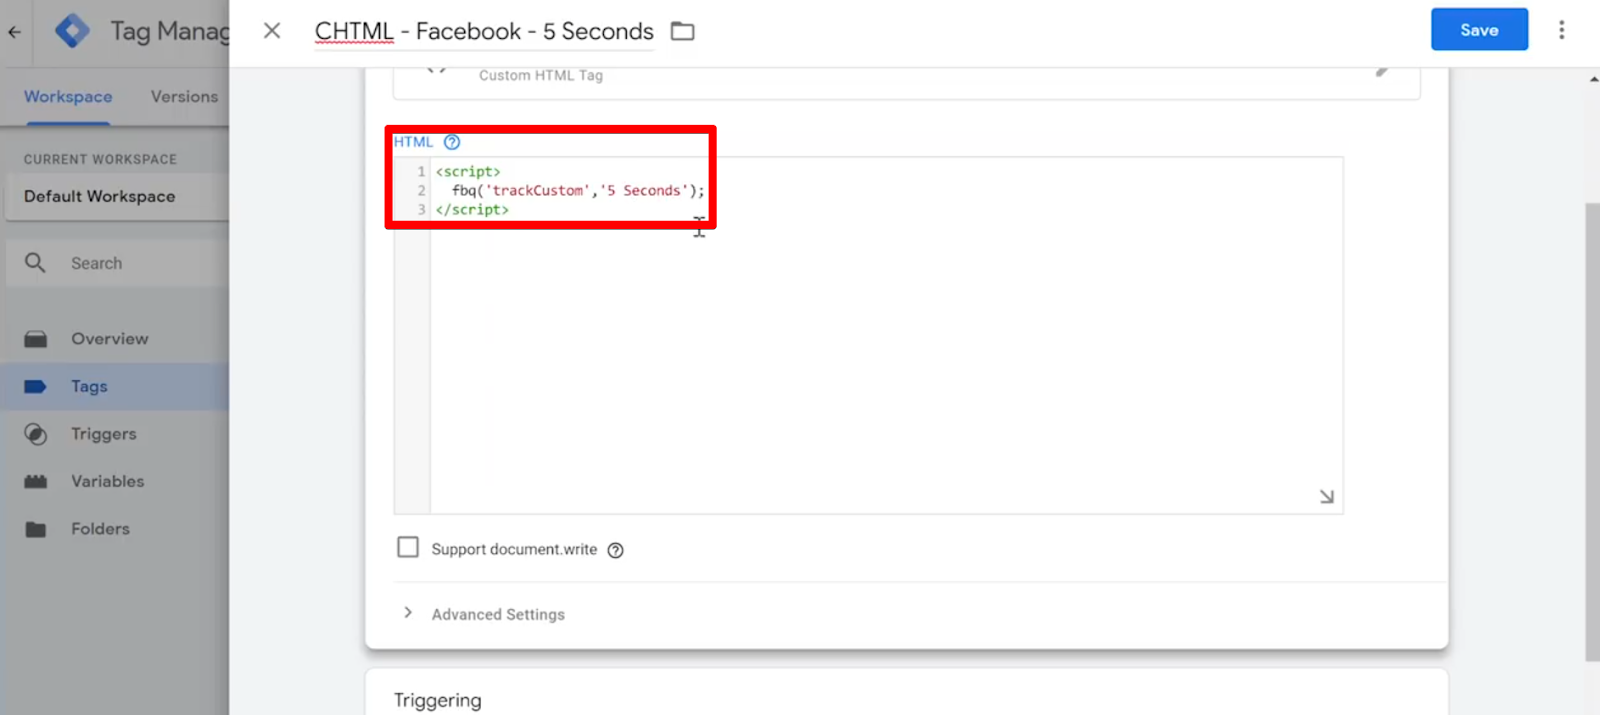 CHTML - Facebook - 5 Seconds Tag HTML code from above pasted into Tag HTML field